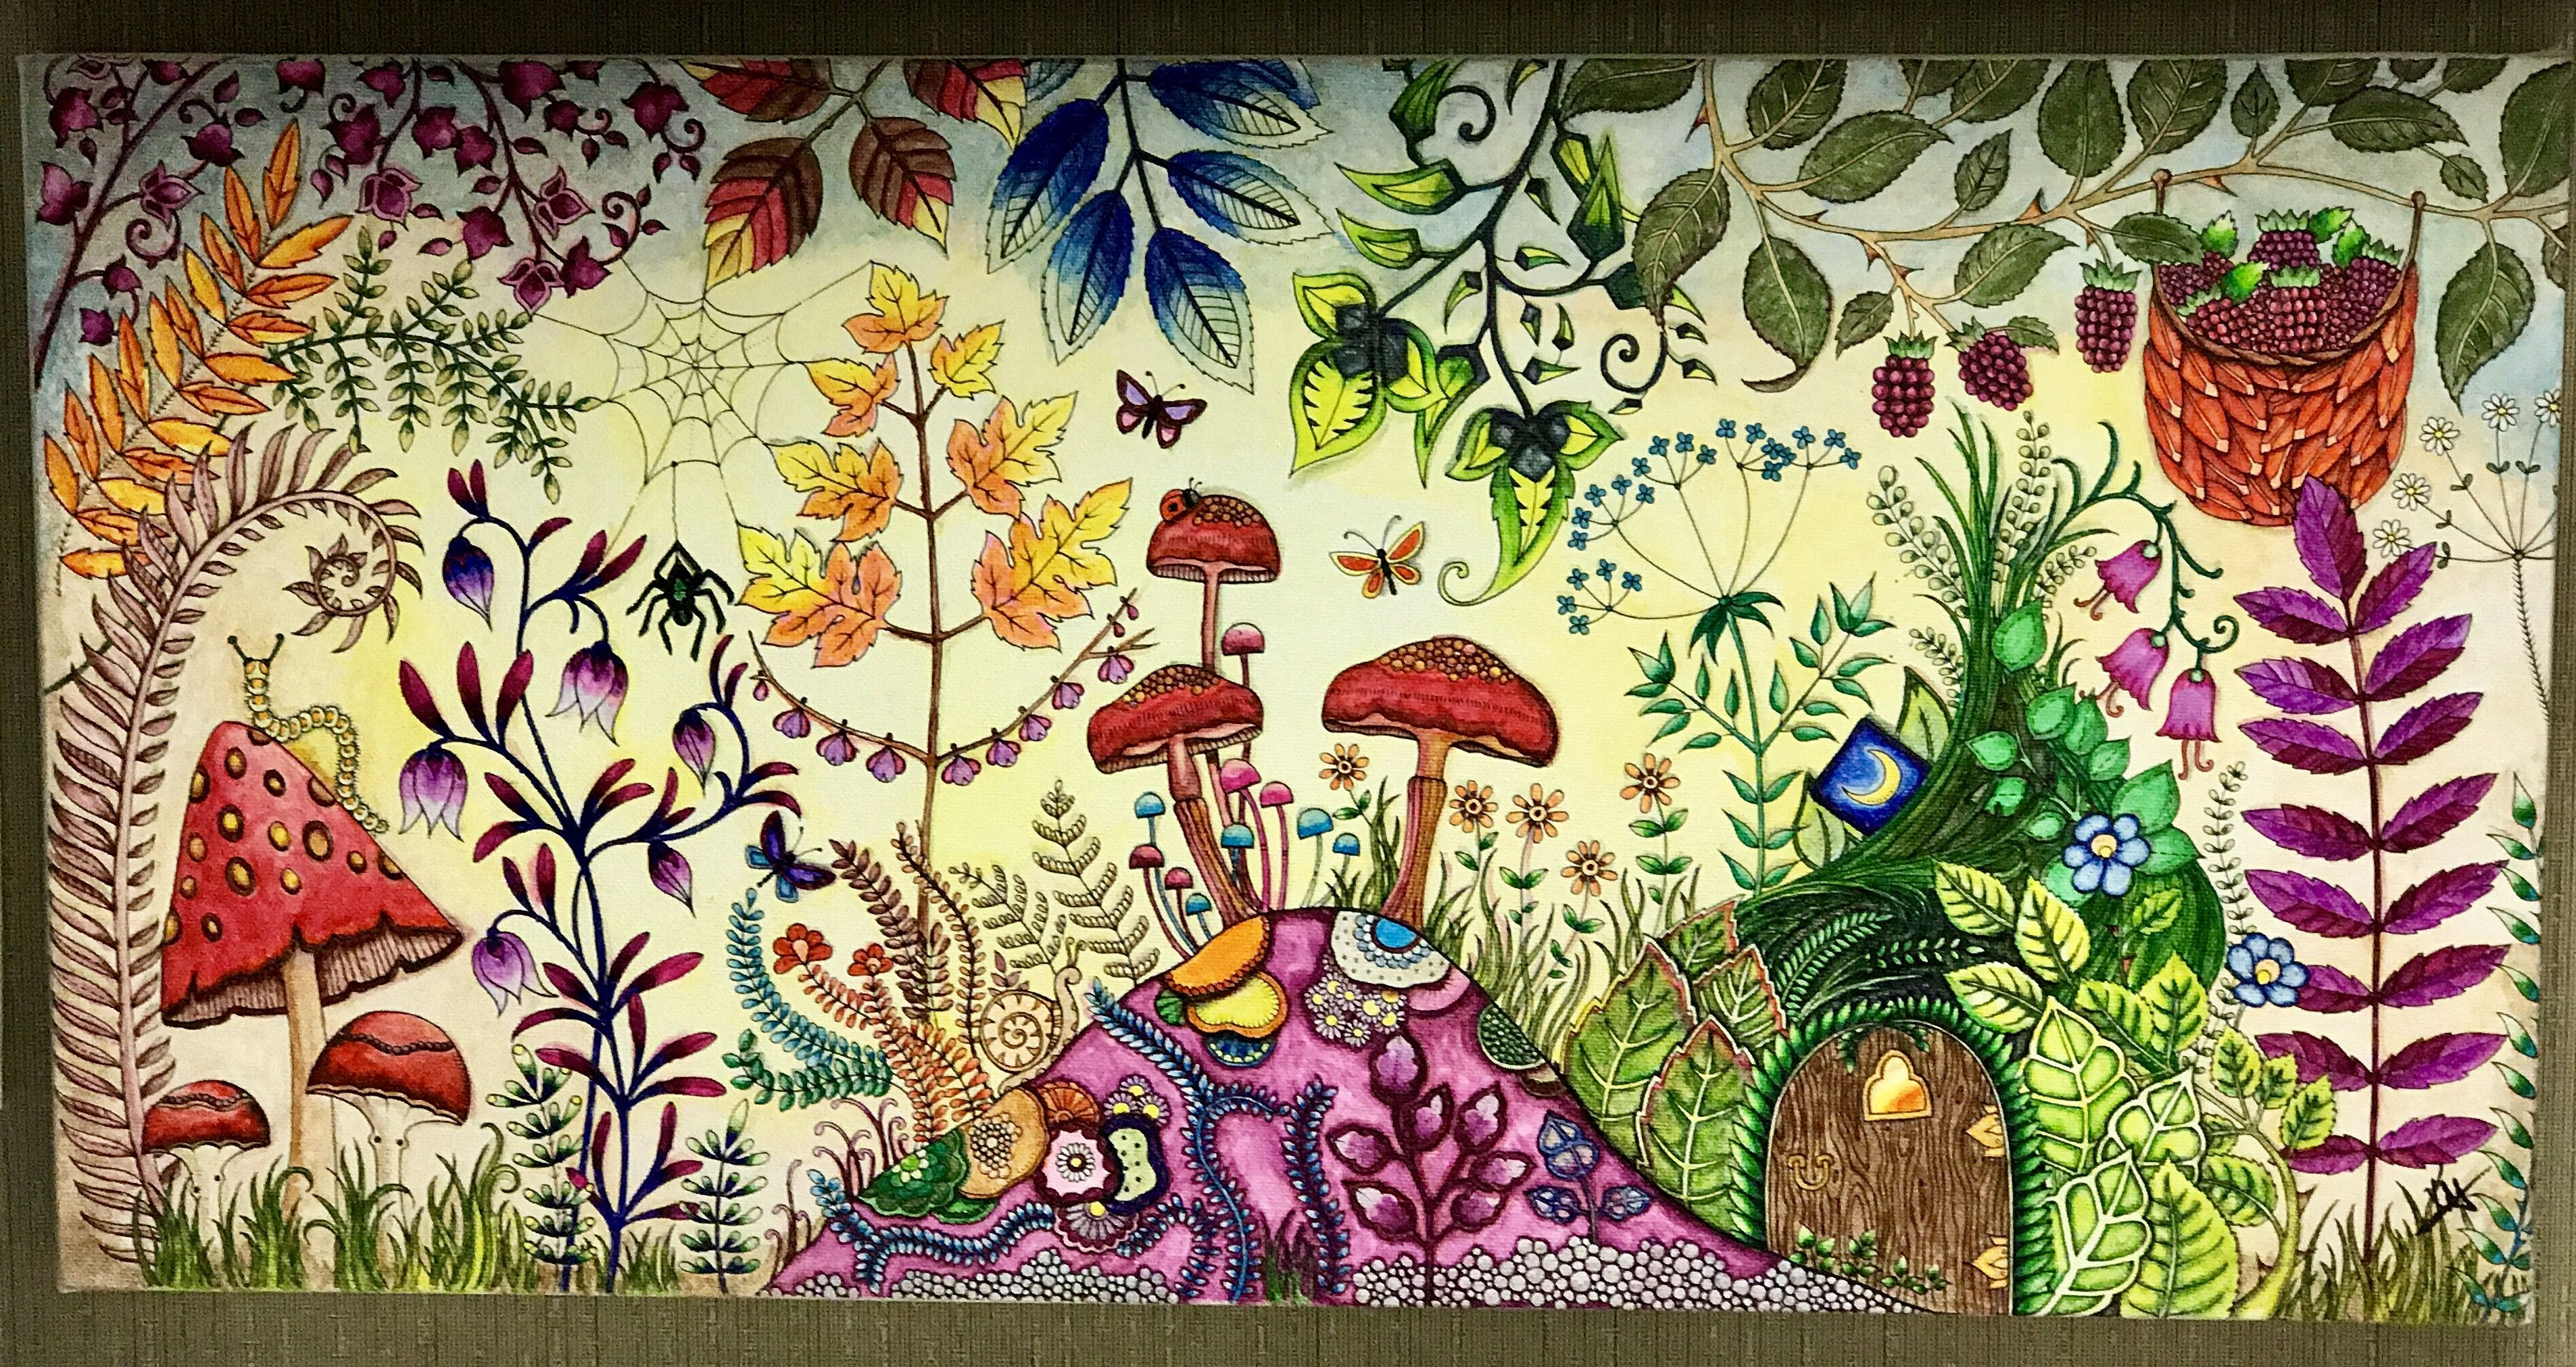 Faerie Forest From Enchanted Forest By Johanna Basford Done With Wat Enchanted Forest Coloring Enchanted Forest Coloring Book Johanna Basford Enchanted Forest